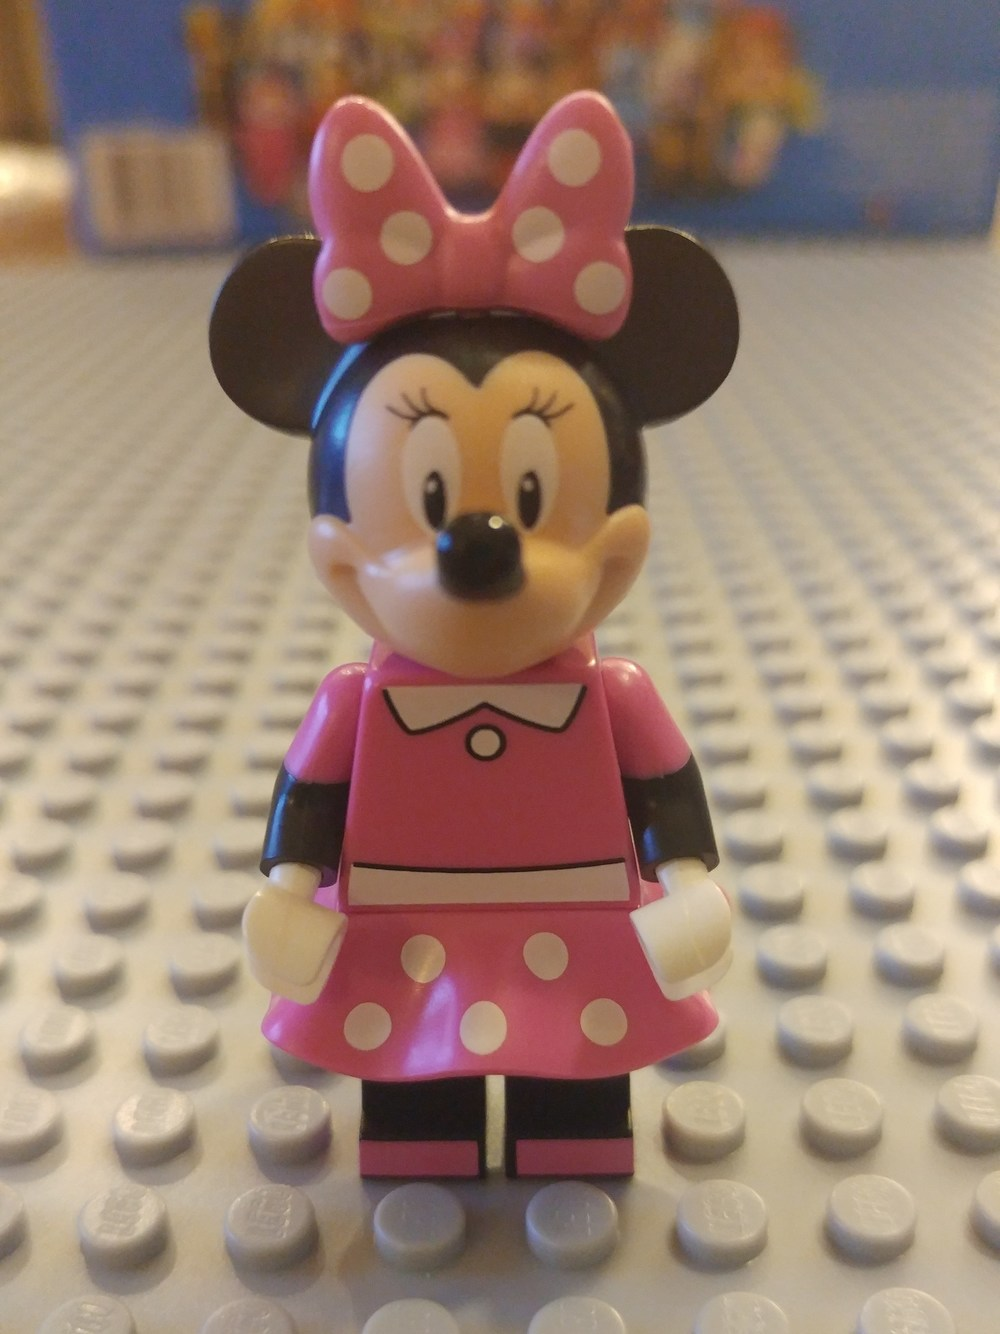 Mini Mouse Minifig Close Up - Front